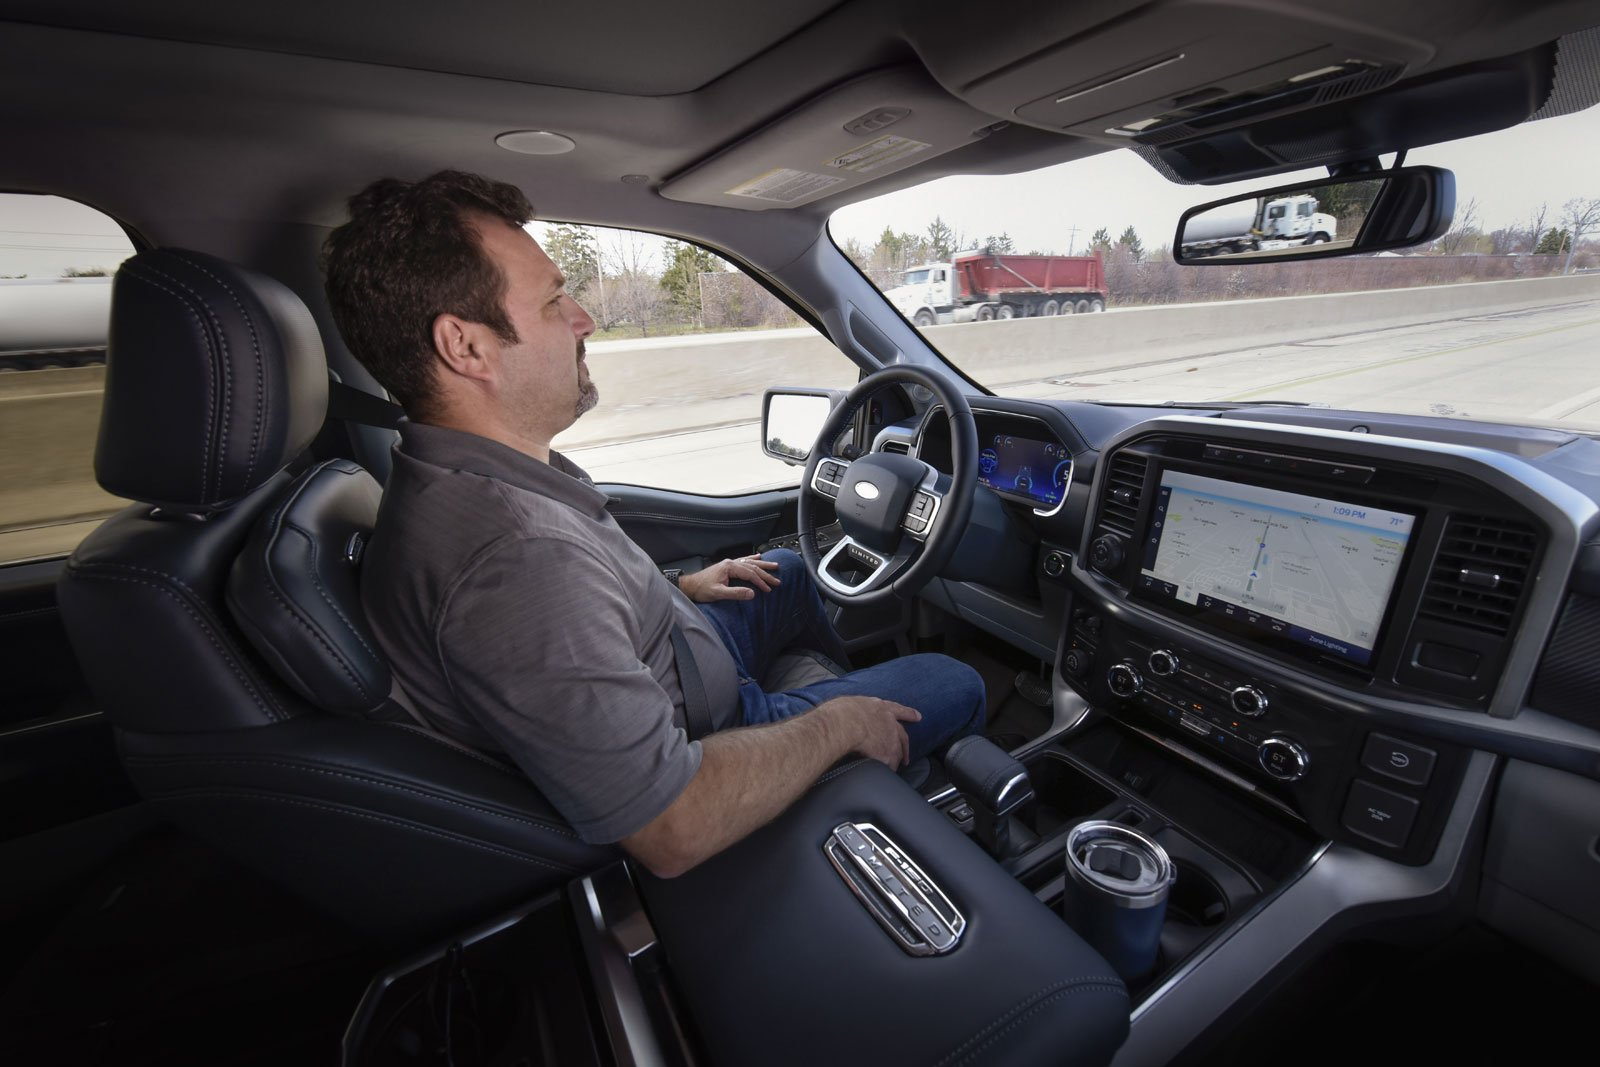 Ford BlueCruise Hands-Free Driving Assistant